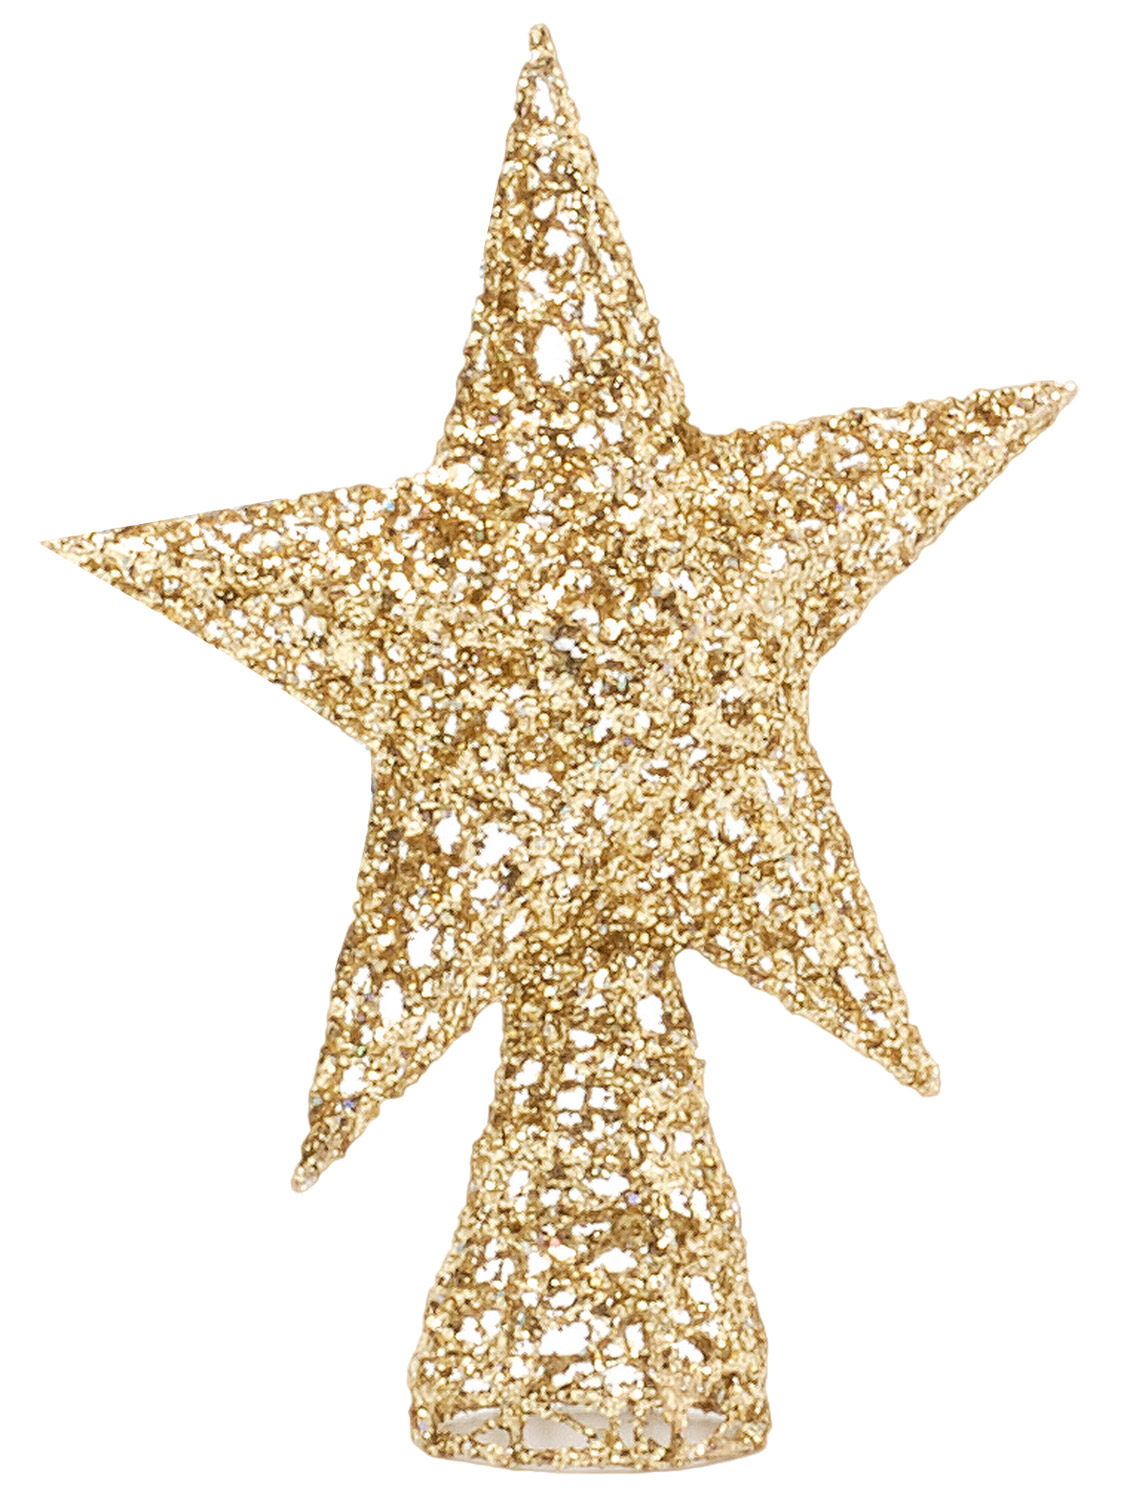 Christmas Tree Star.Details About Star Christmas Tree Topper Glitter Gold Silver Xmas Decoration 25cm Traditional